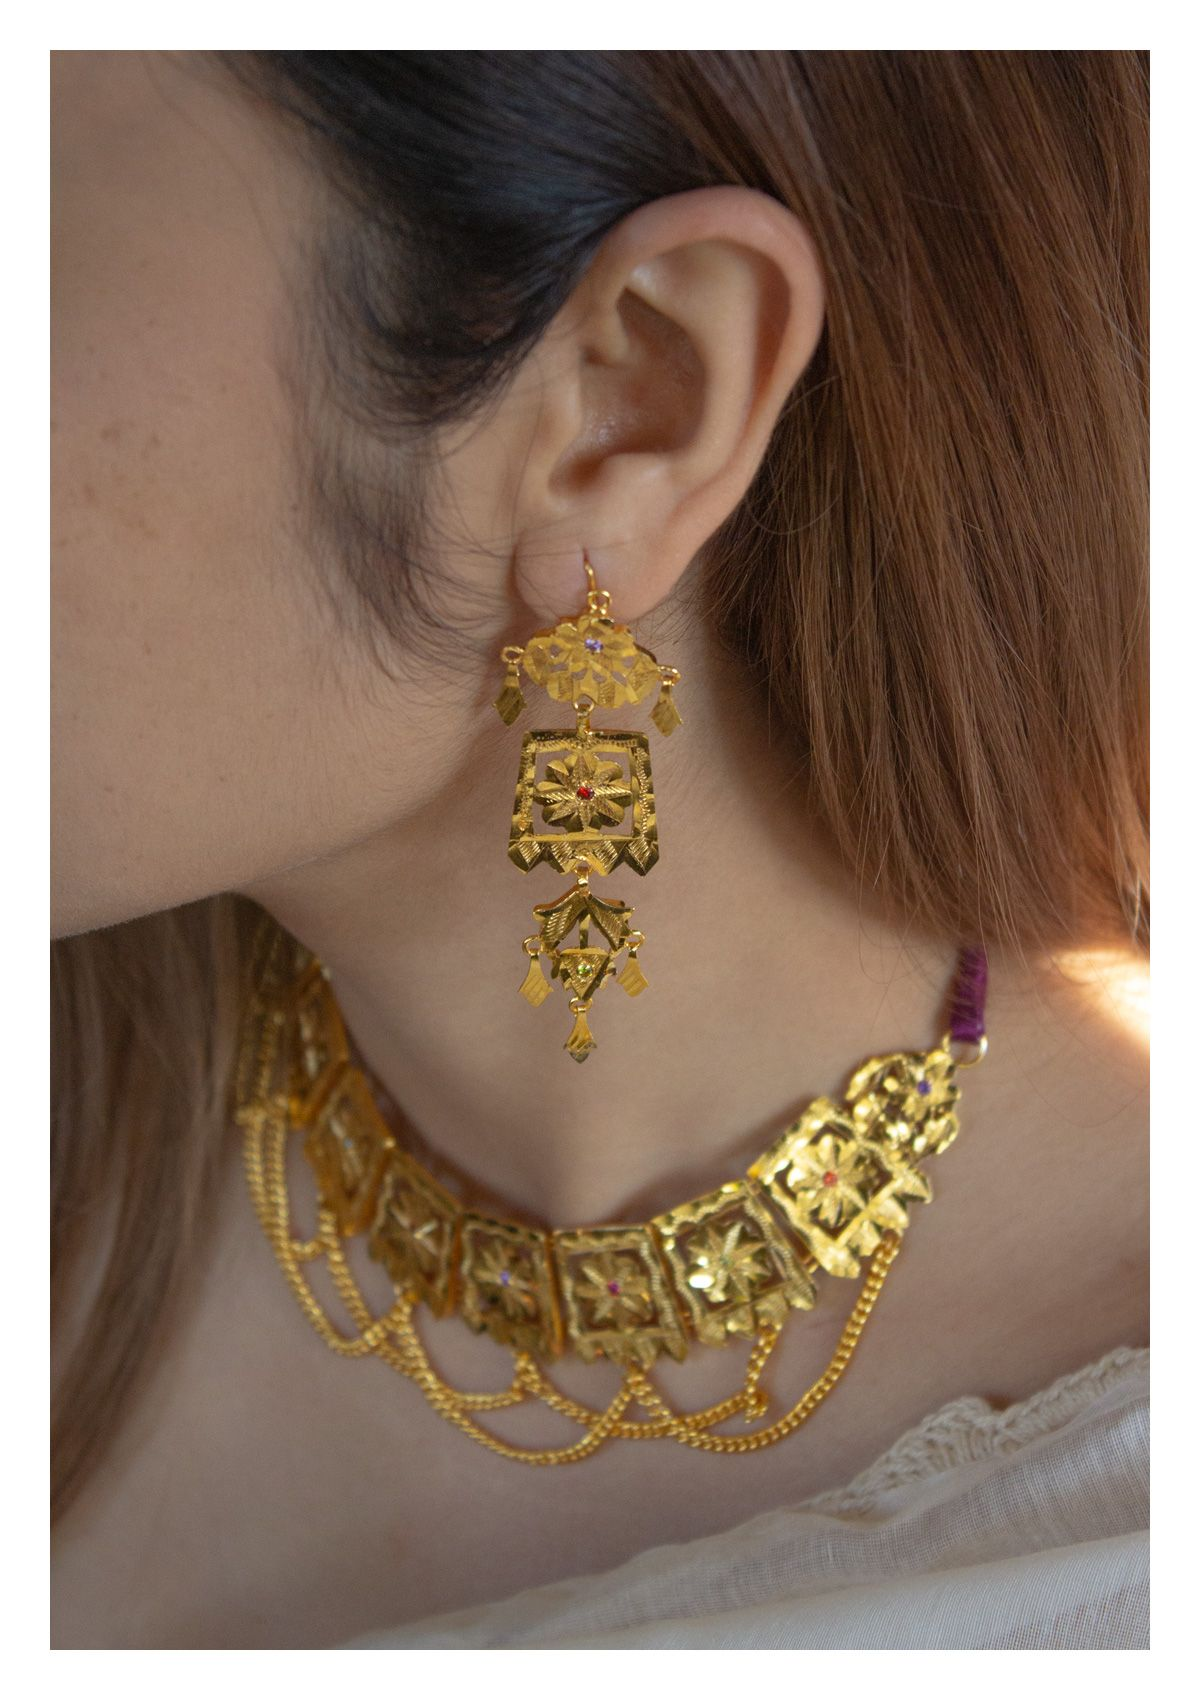 Binari Handmade Gold Tone Silver Necklace and Earrings Set